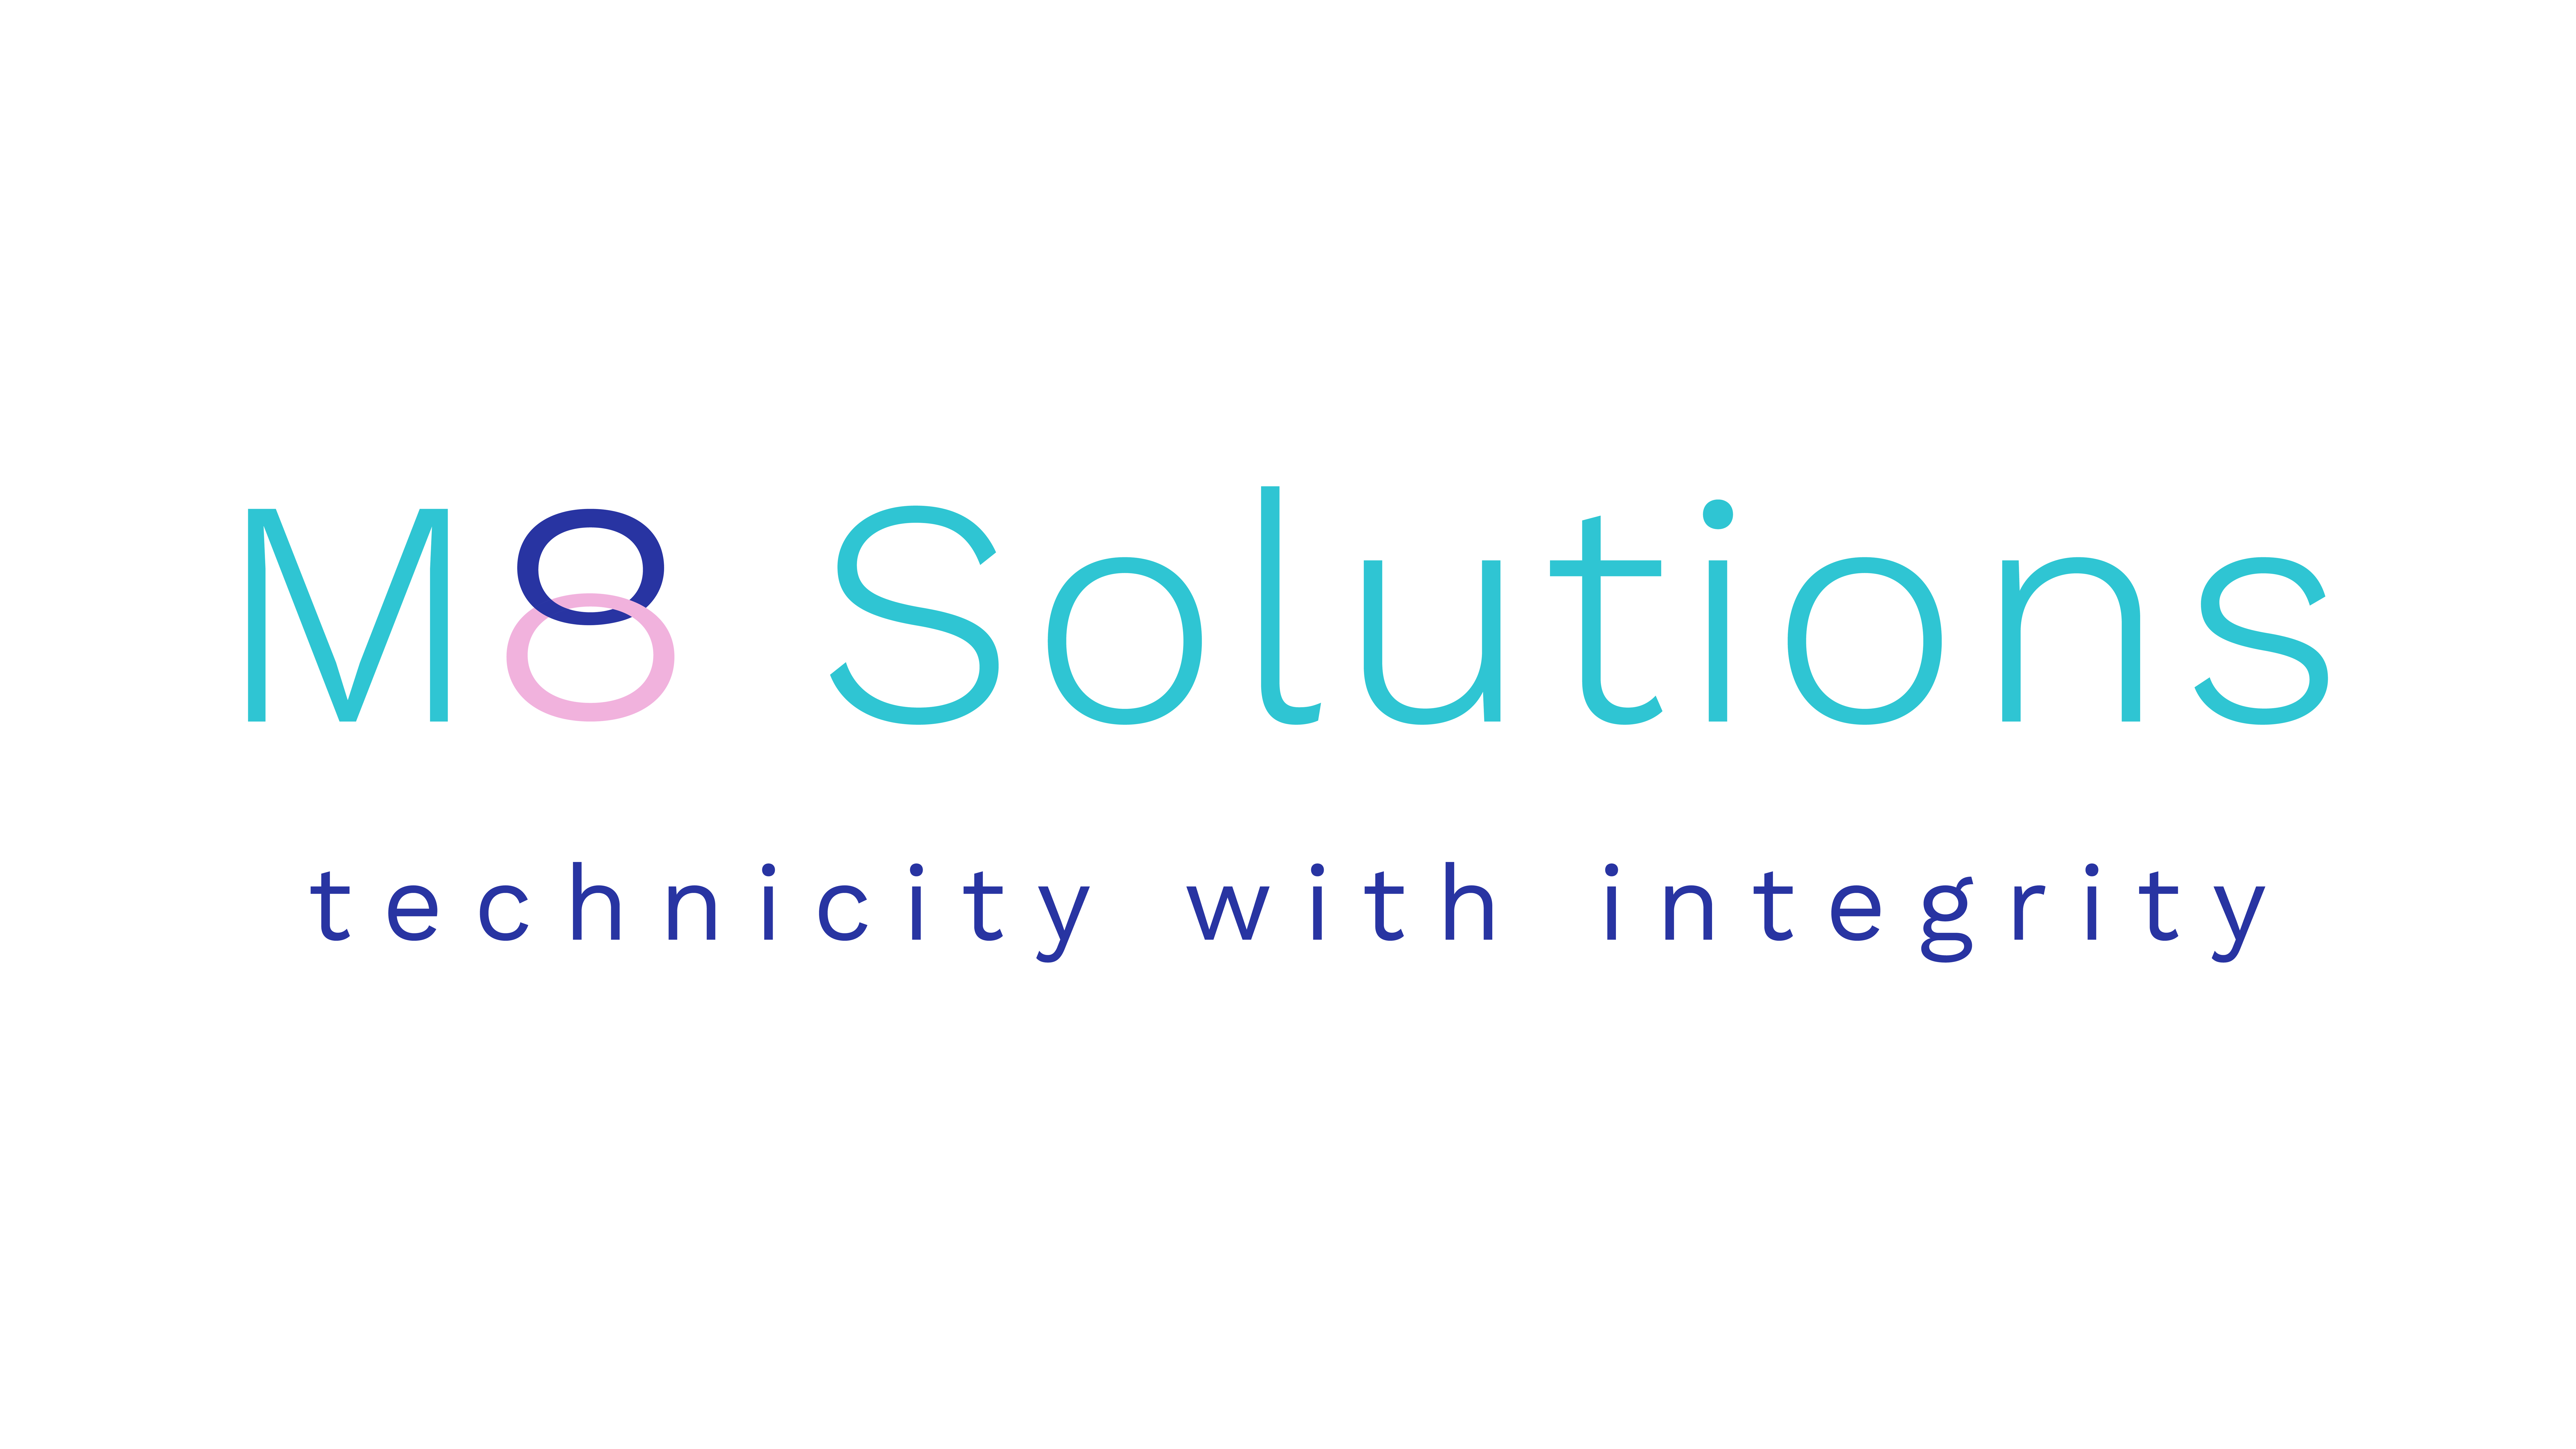 M8 Solutions- Technicity with Integrity